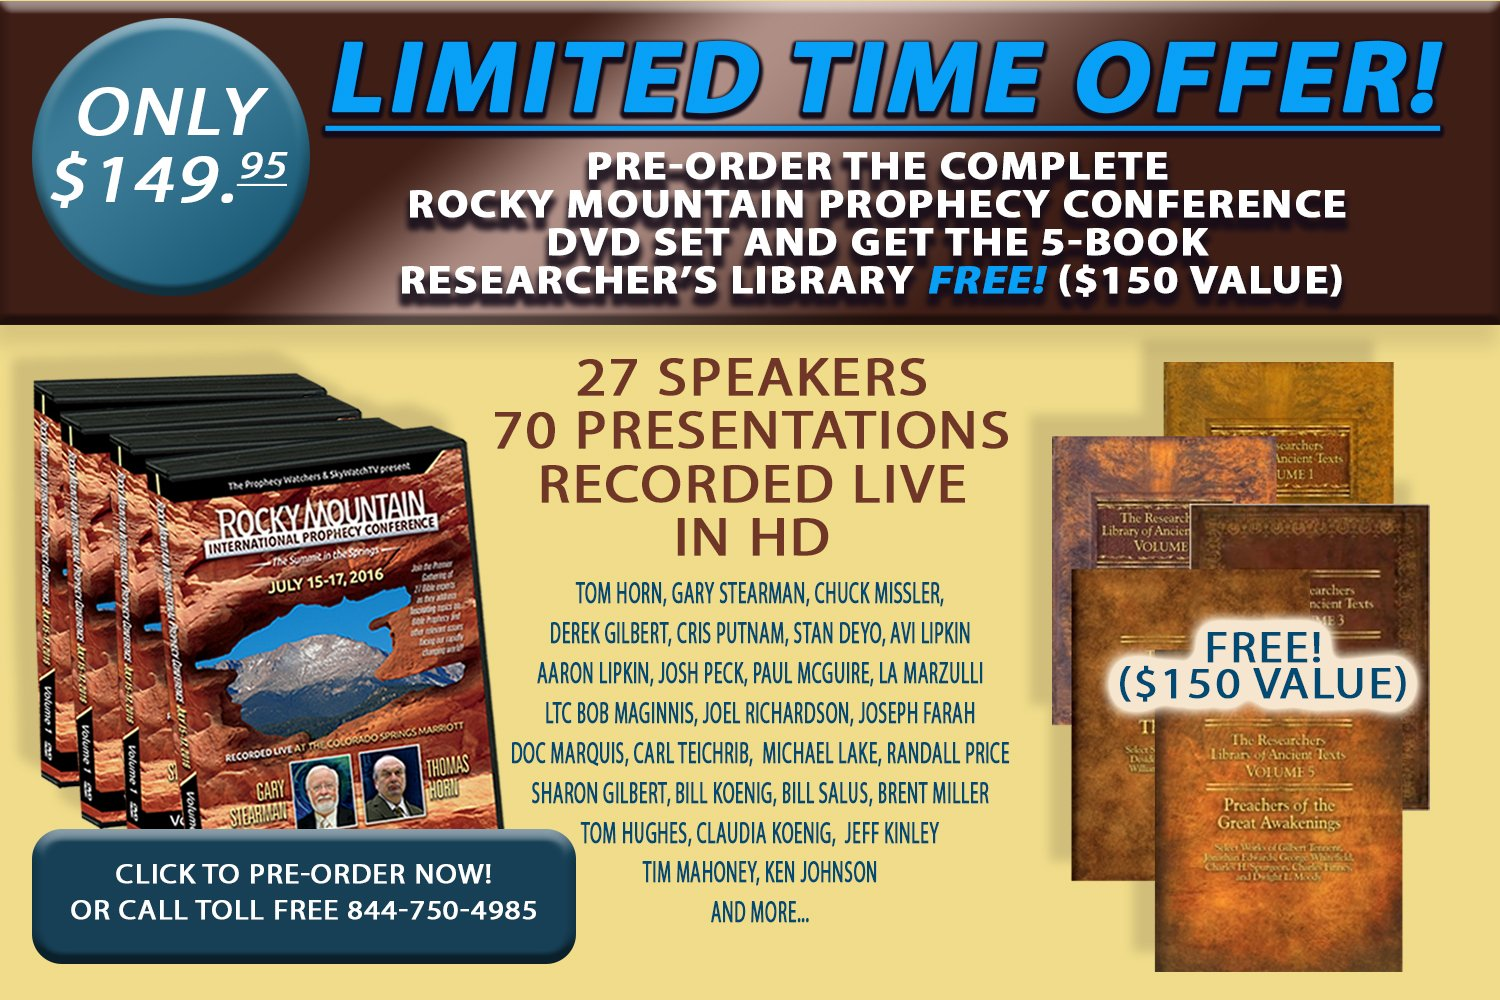 "FREE! GET THE HUGE 5-VOLUME ""RESEARCHERS LIBRARY OF ANCIENT TEXTS"" ($150.00 VALUE) TO KEEP OR GIVE AS A GIFT WHEN YOU PRE-ORDER THE COMPLETE ROCKY MOUNTAIN PROPHECY CONFERENCE DVD SET!"